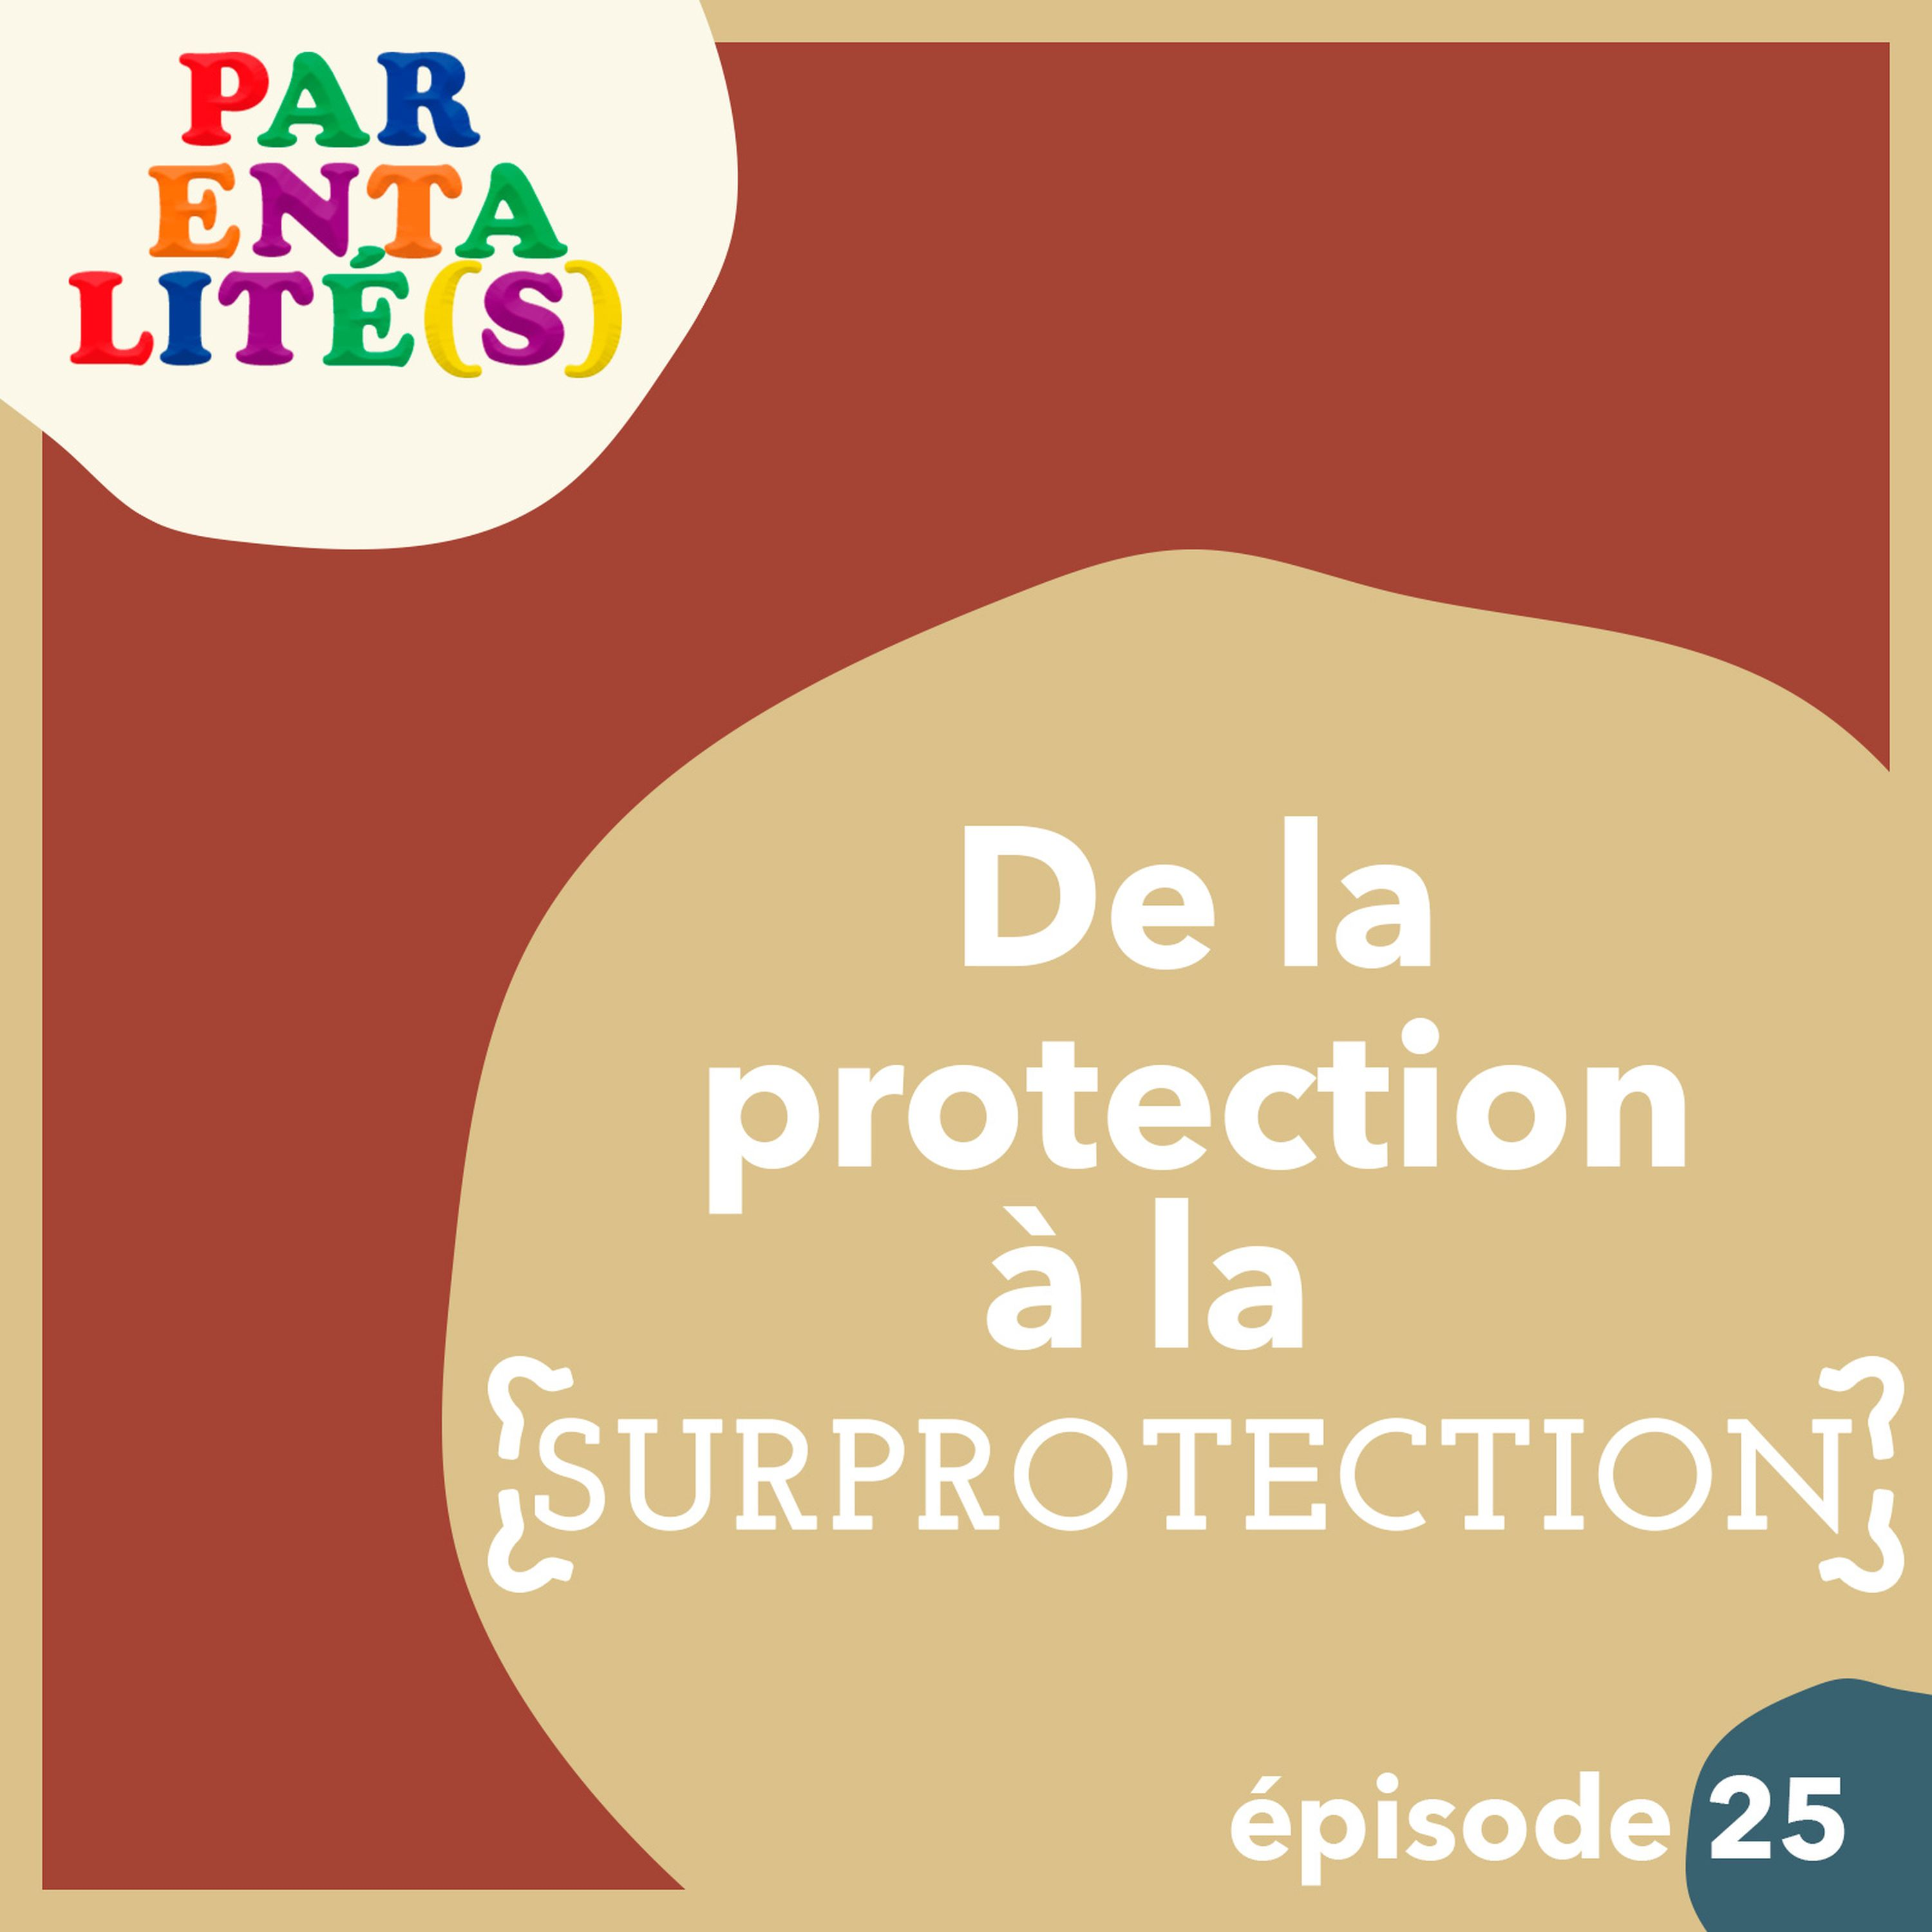 De la protection à la surprotection